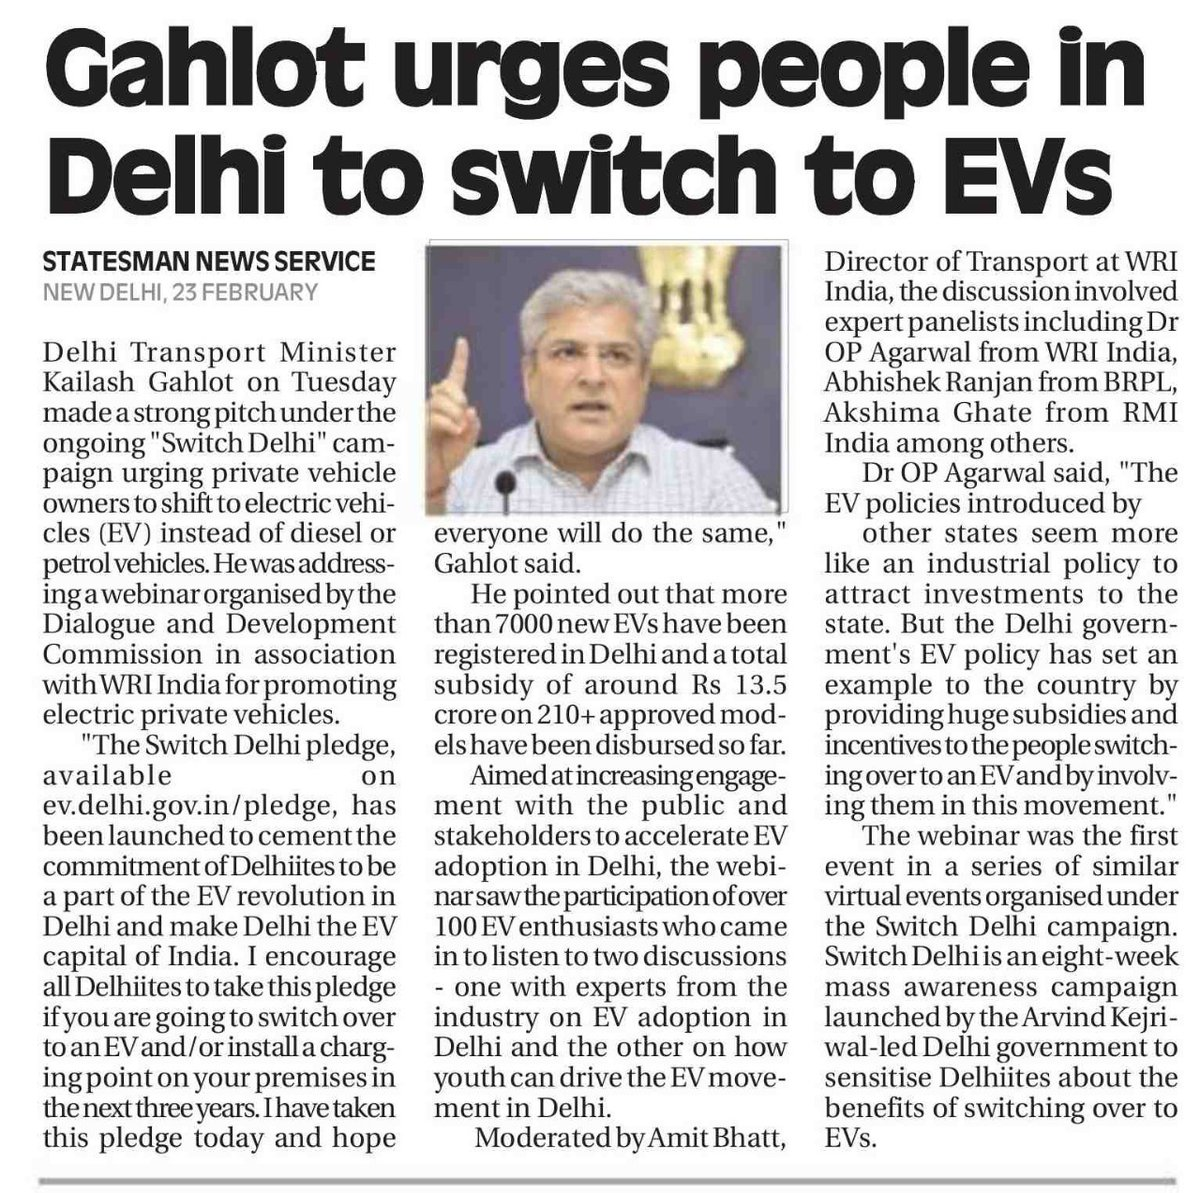 #InTheNews | Aimed at increasing engagement with public to accelerate #electricvehicle adoption in Delhi, over 100 EV enthusiasts came to listen in to two a webinar yesterday that featured our Principal, Akshima Ghate, among other experts.  Read more from @TheStatesmanLtd: